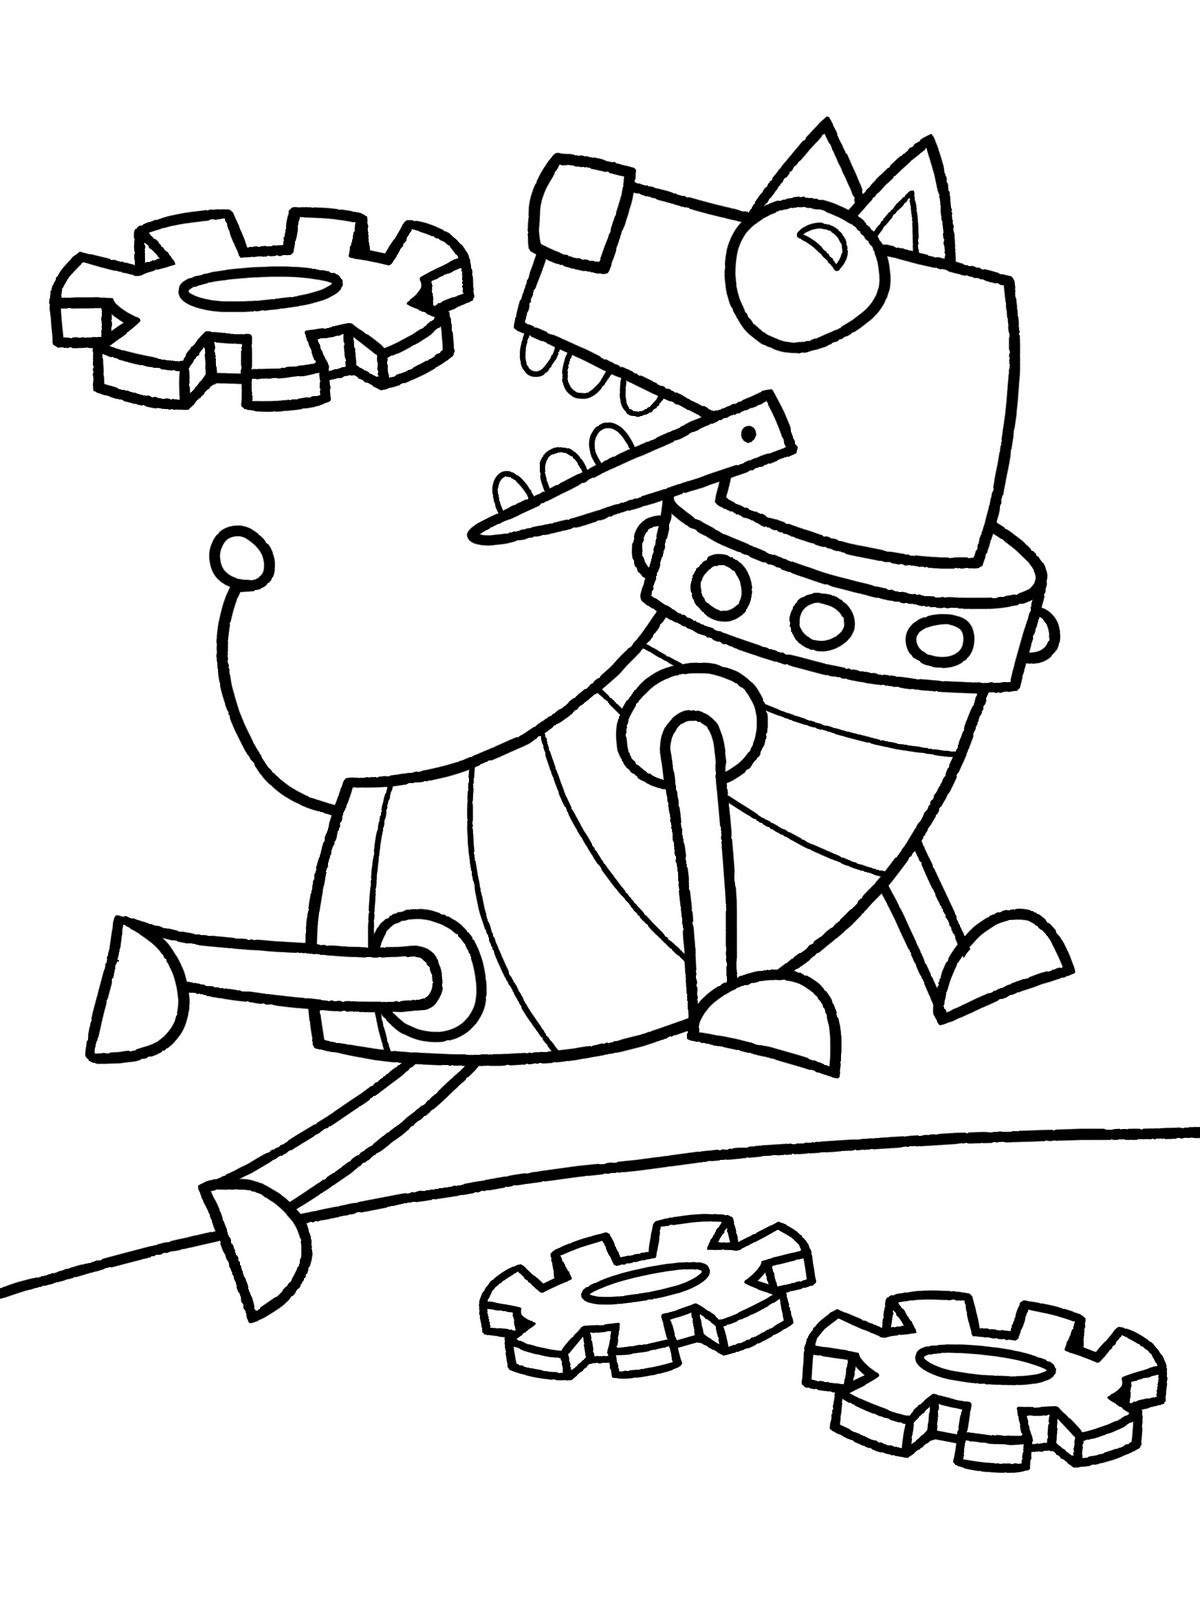 robot pictures to print robot coloring pages kidsuki print pictures to robot